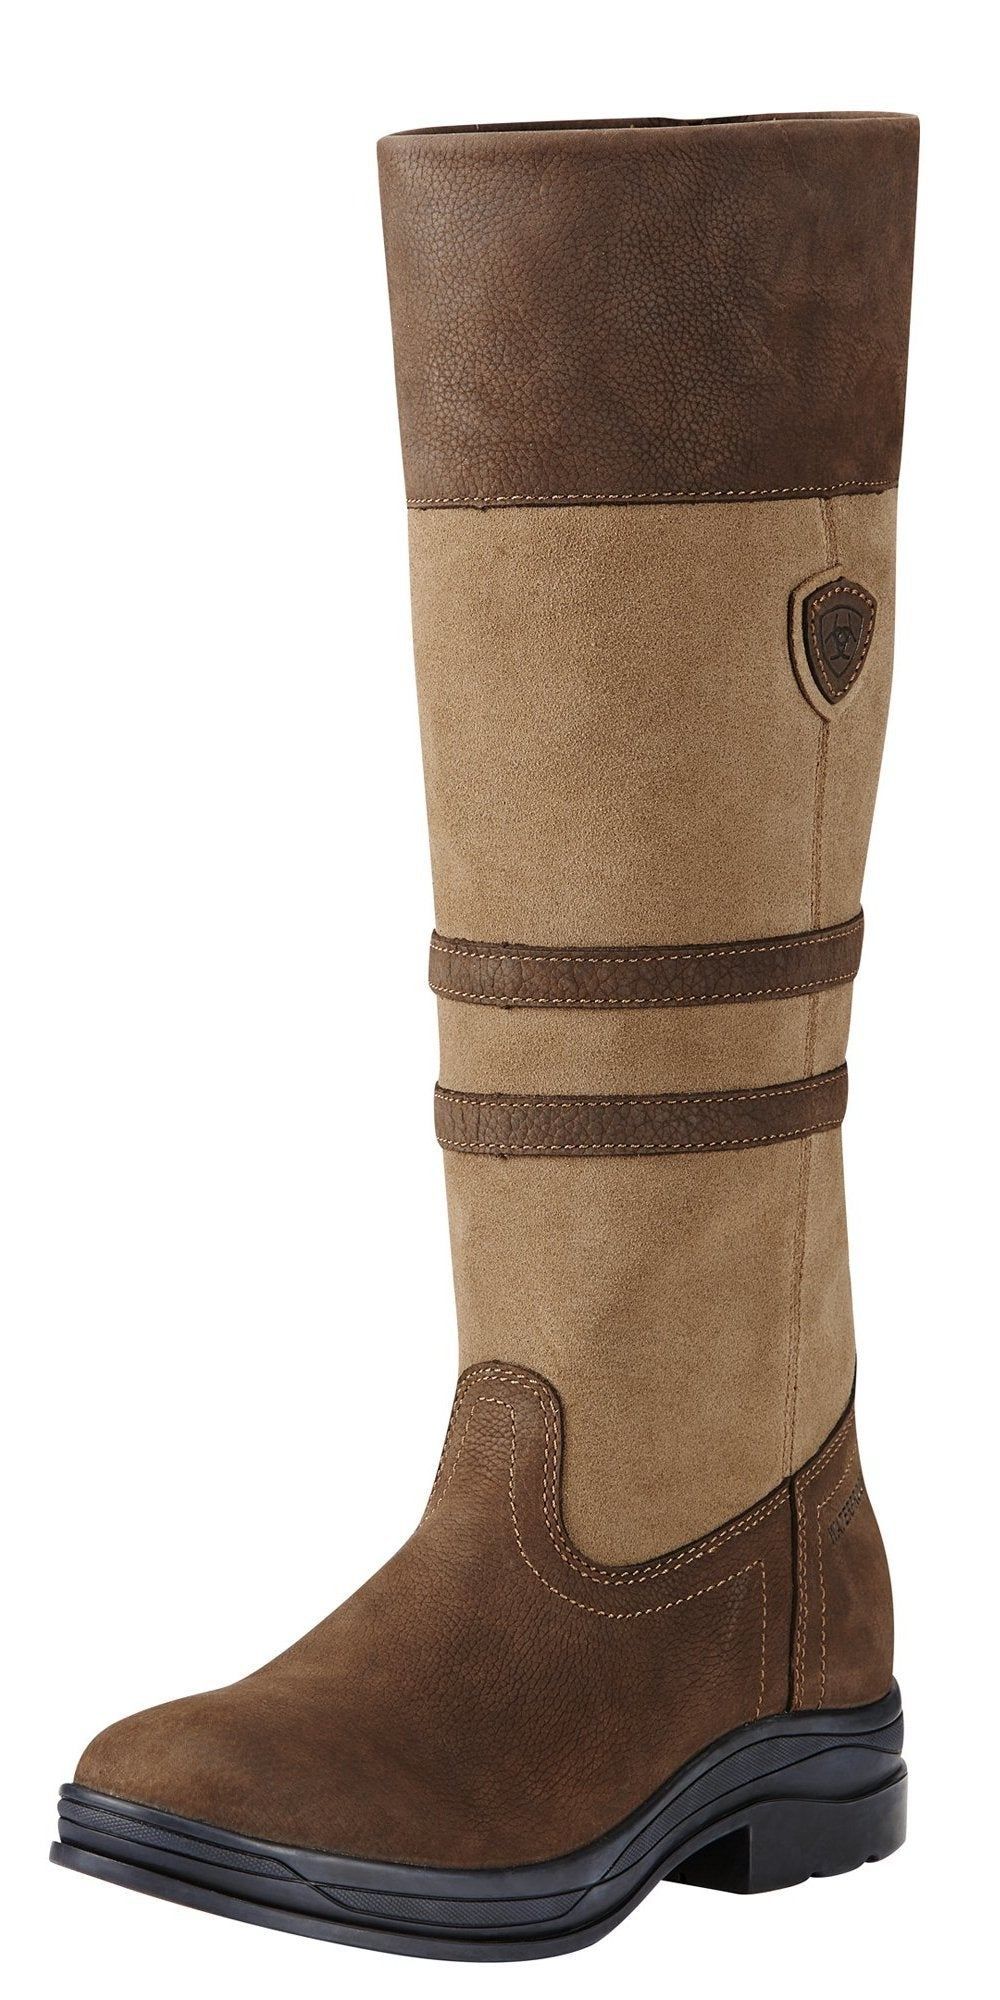 Ariat Ambleside Waterproof Boot Flaxen